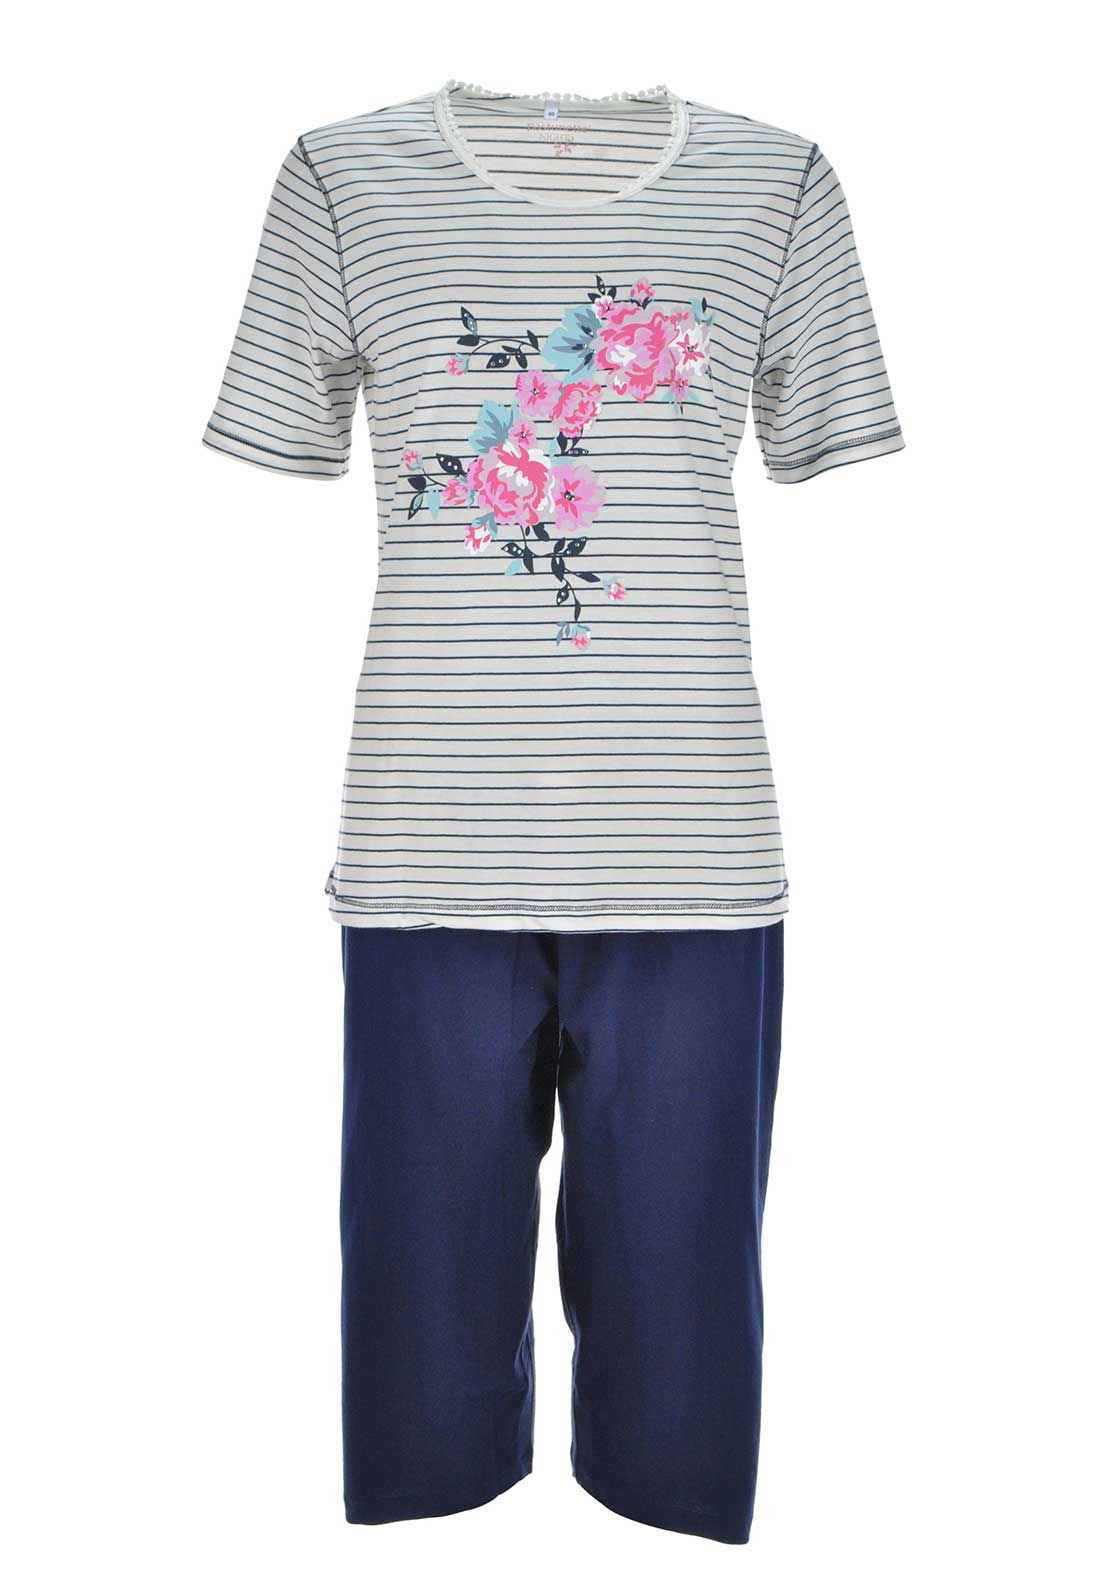 Pastunette Graphic Floral Print Pyjama Set, Cream and Navy